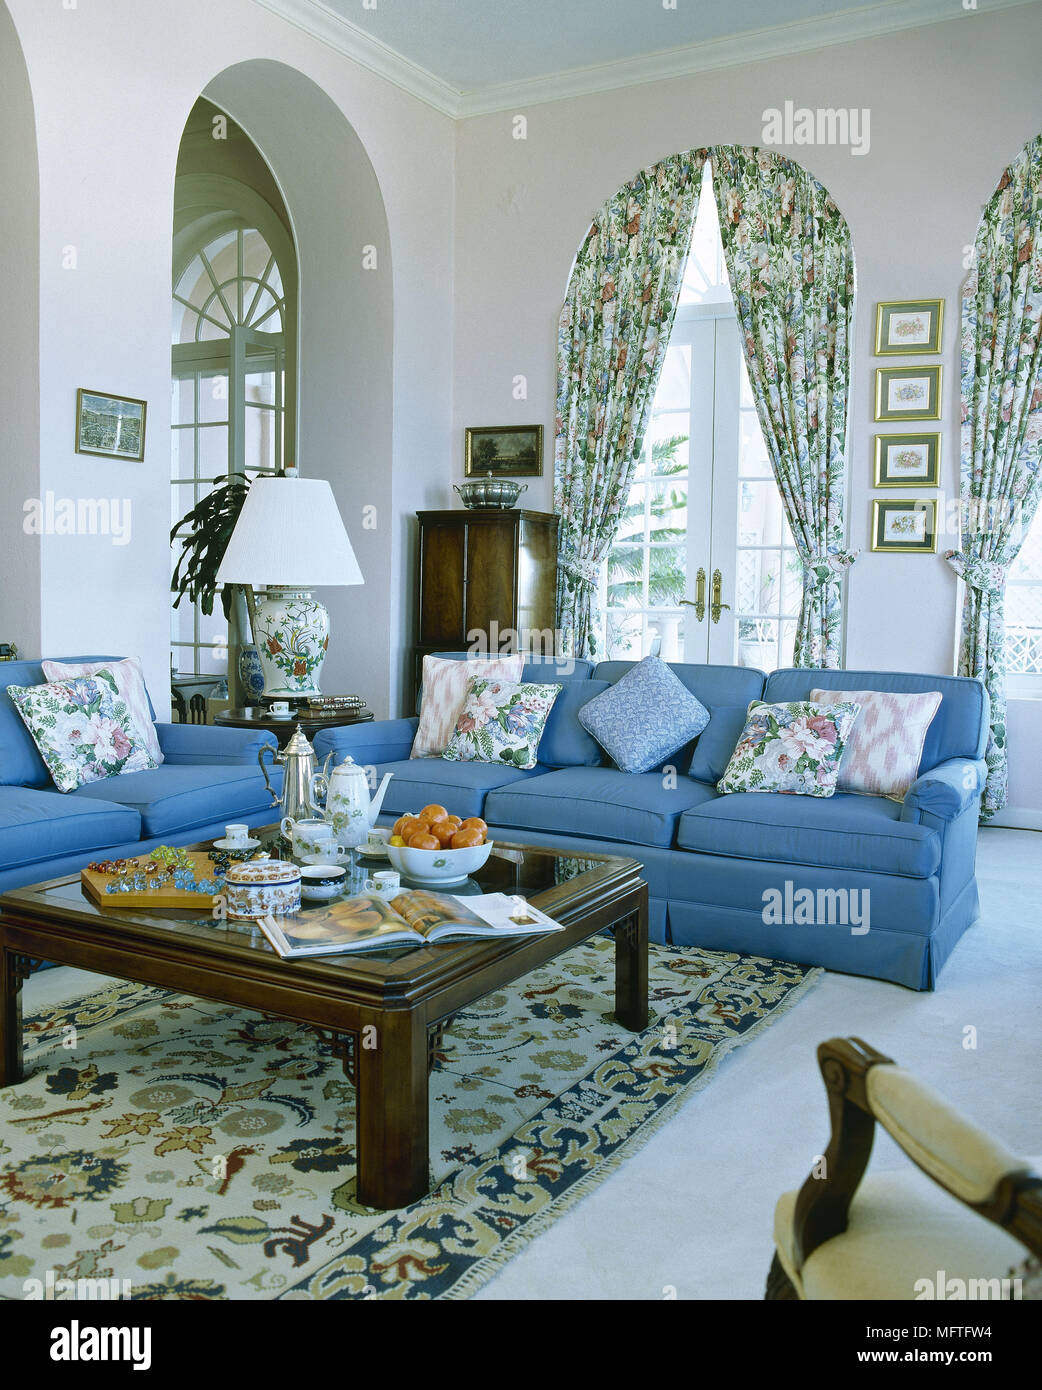 Draping Curtains Traditional Sitting Room With Upholstered Sofas Wood Coffee Table